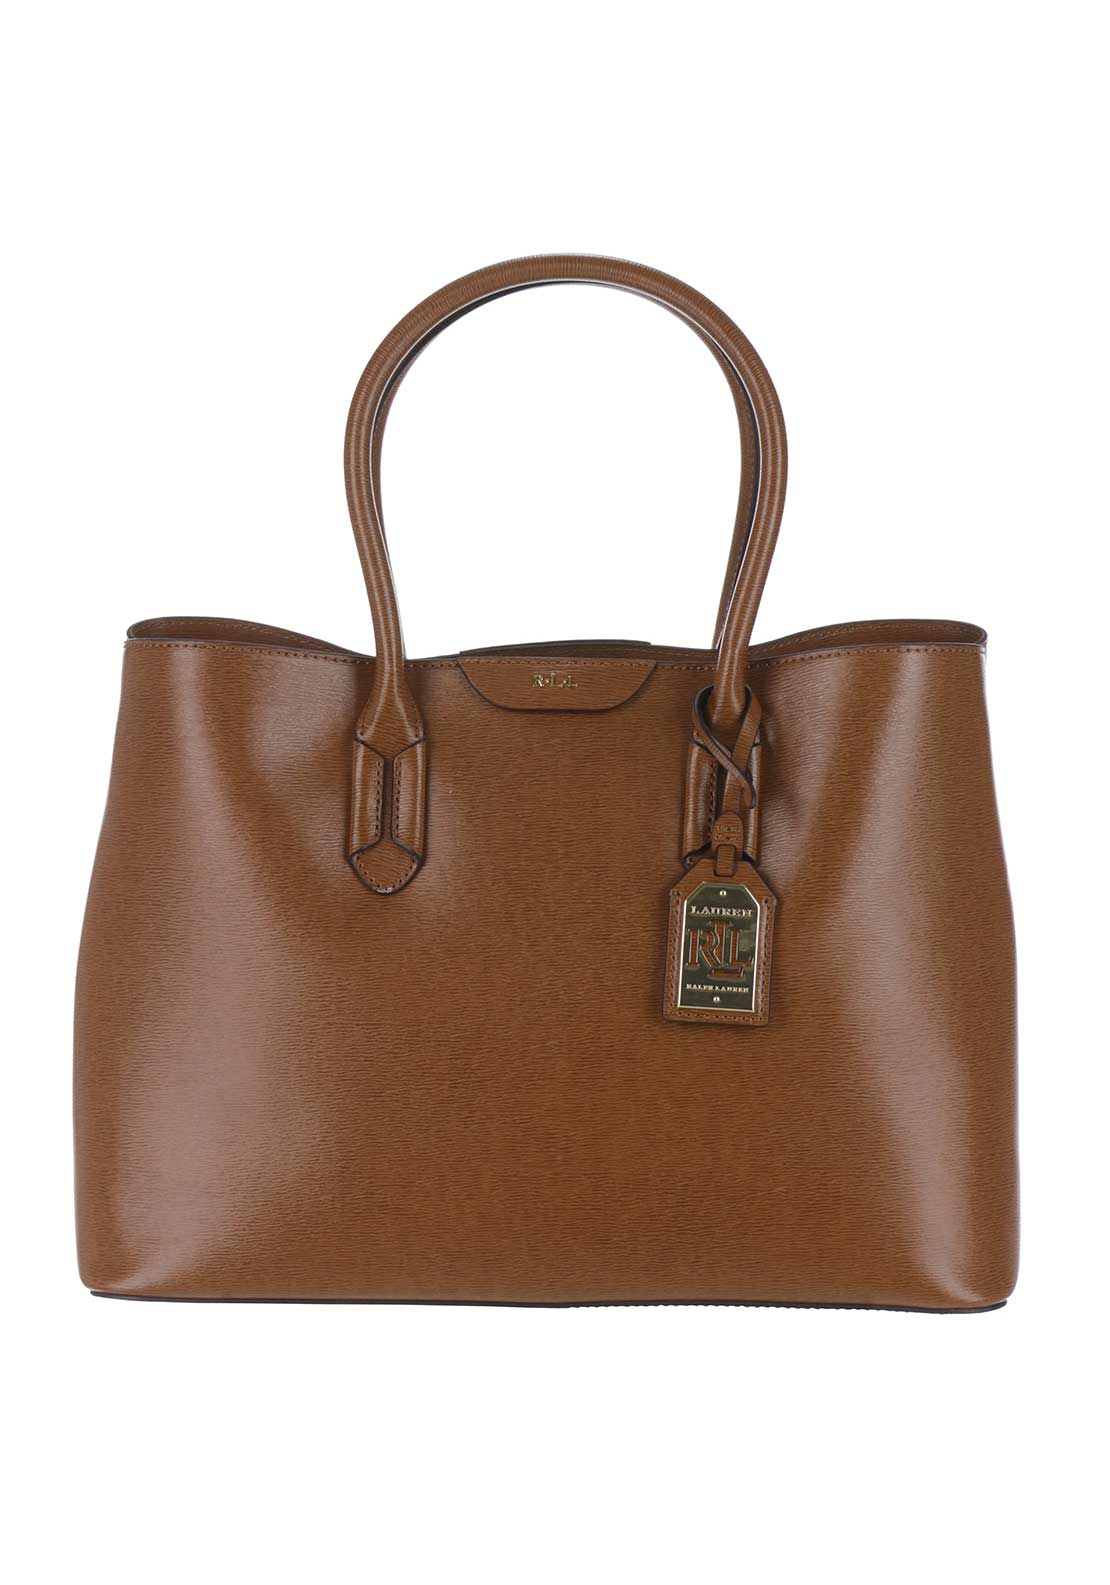 Lauren Ralph Lauren Leather City Tote Bag, Tan/Cocoa